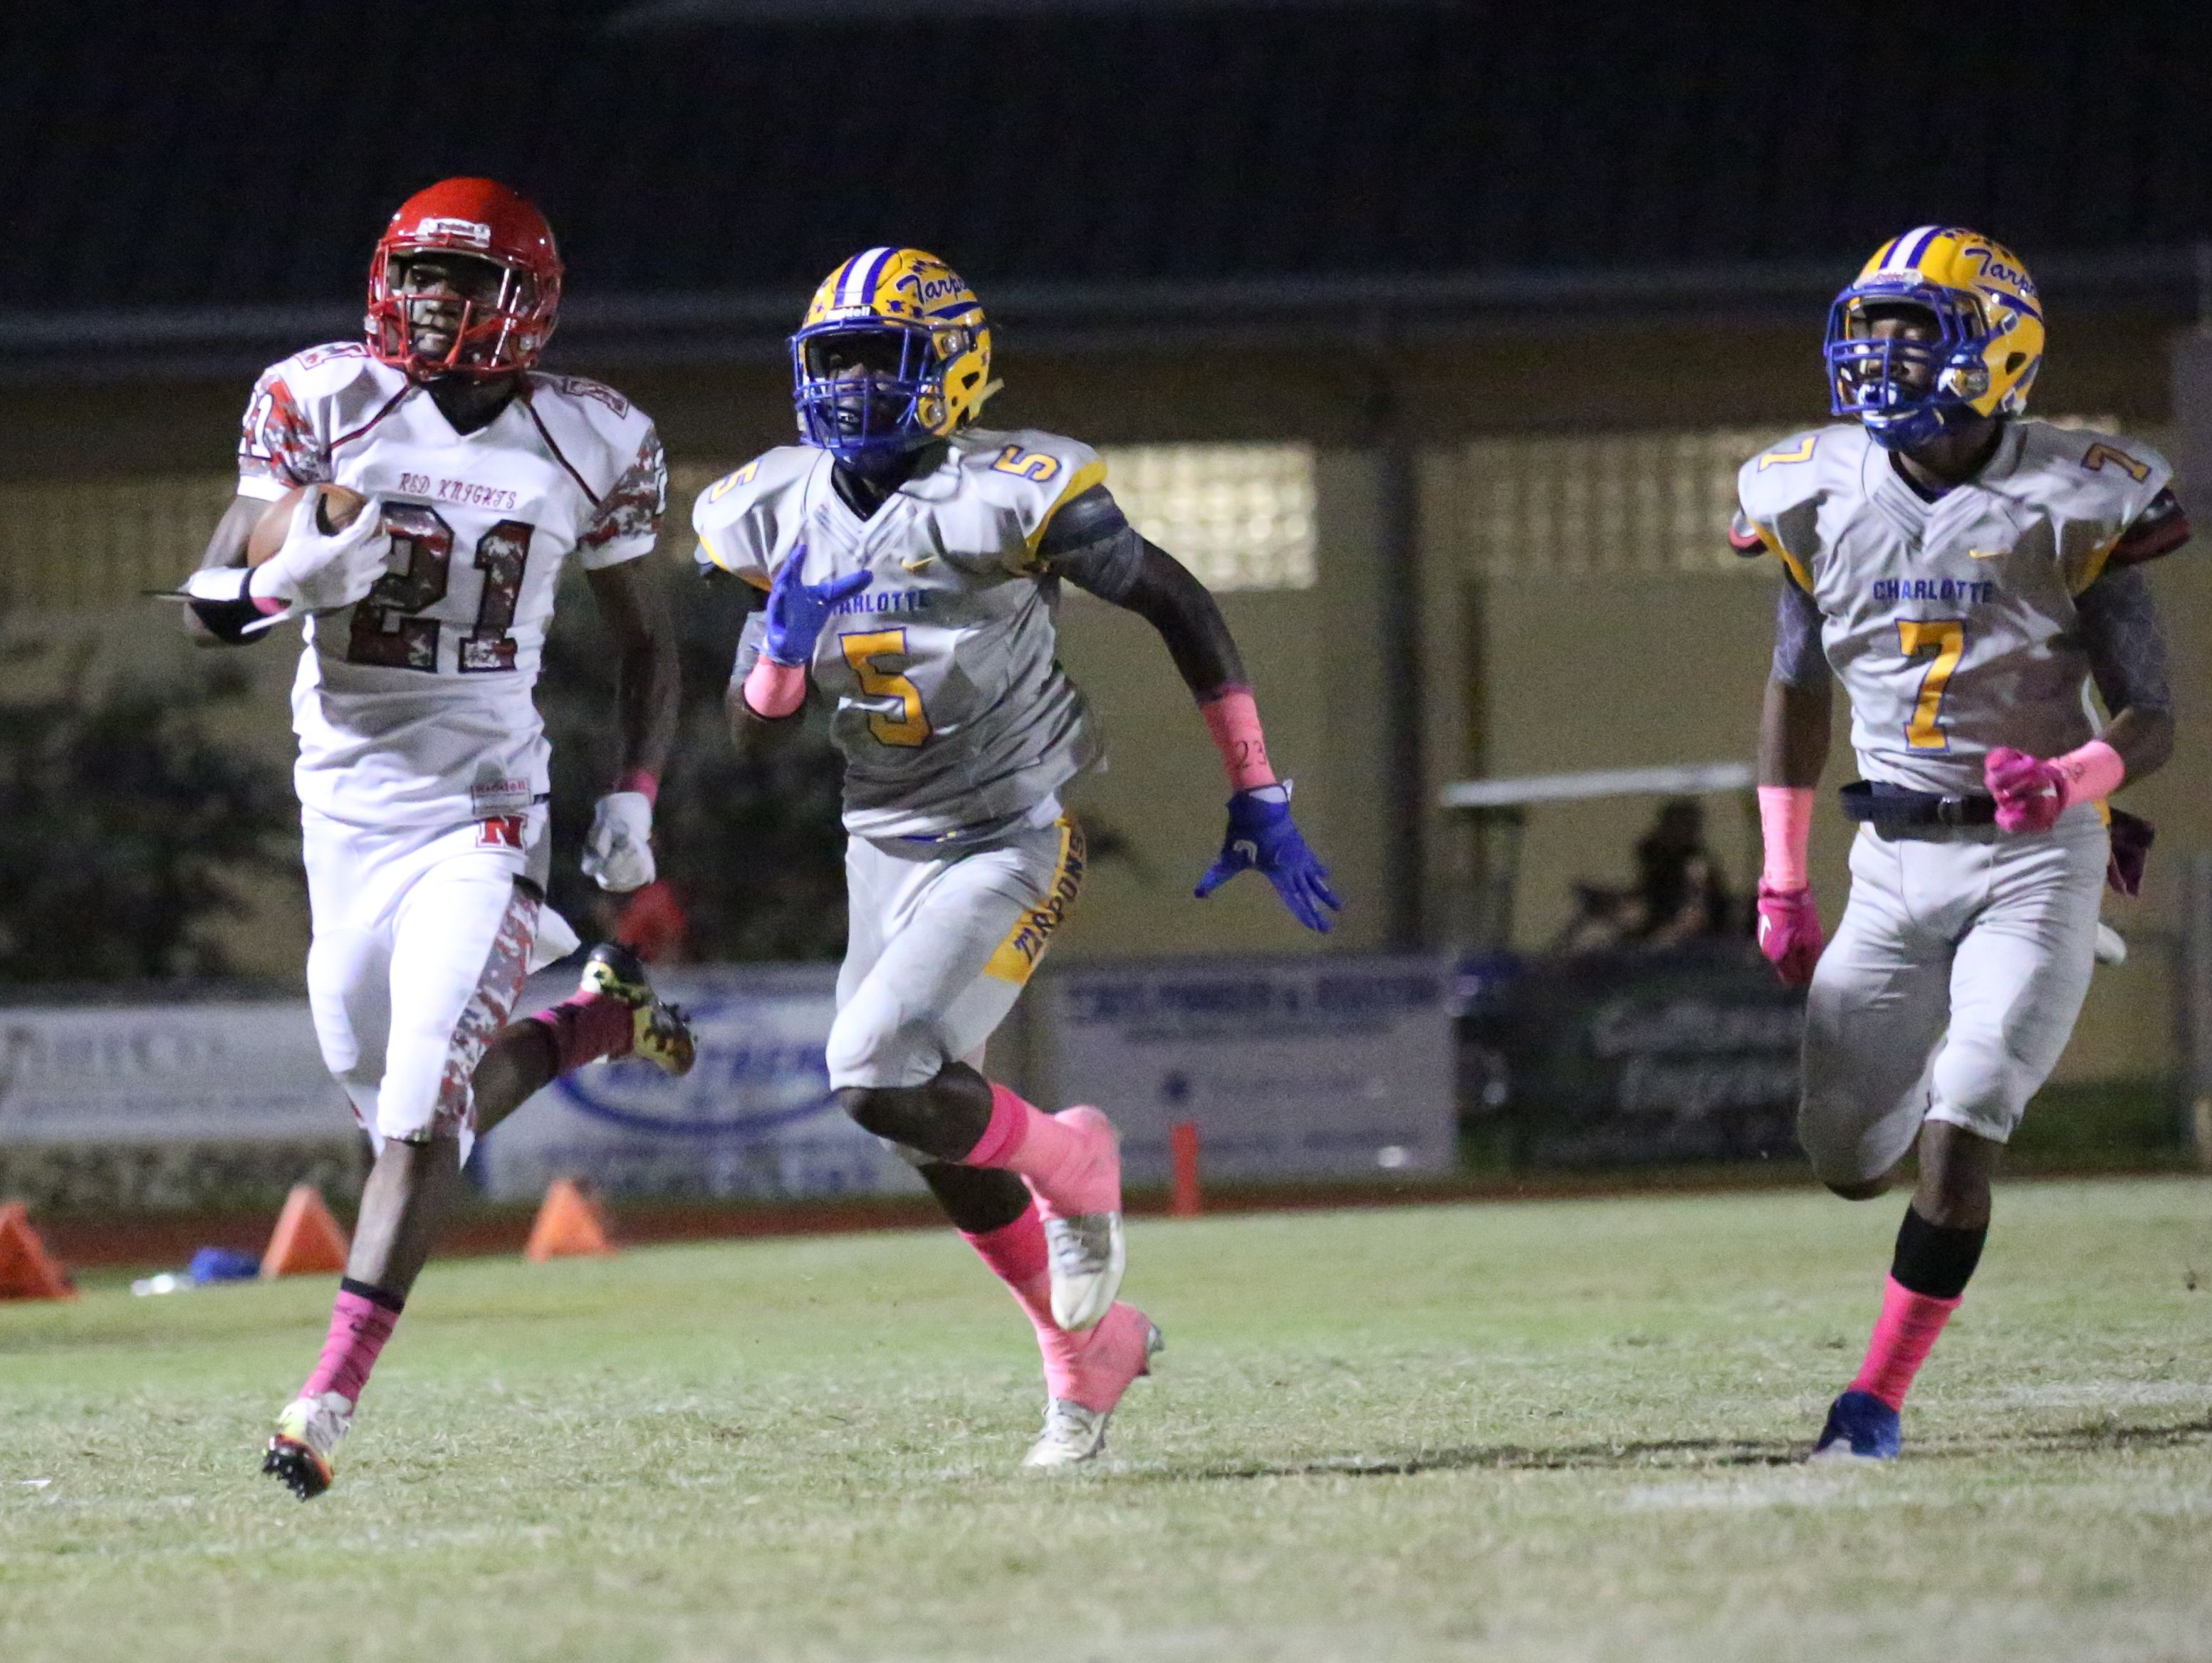 Charlotte defenders, Savorion Warren and Ny Harvey try to catch North Fort Myers' Terry Lindsey as he gains yards as North Fort Myers played at Charlotte Friday night.